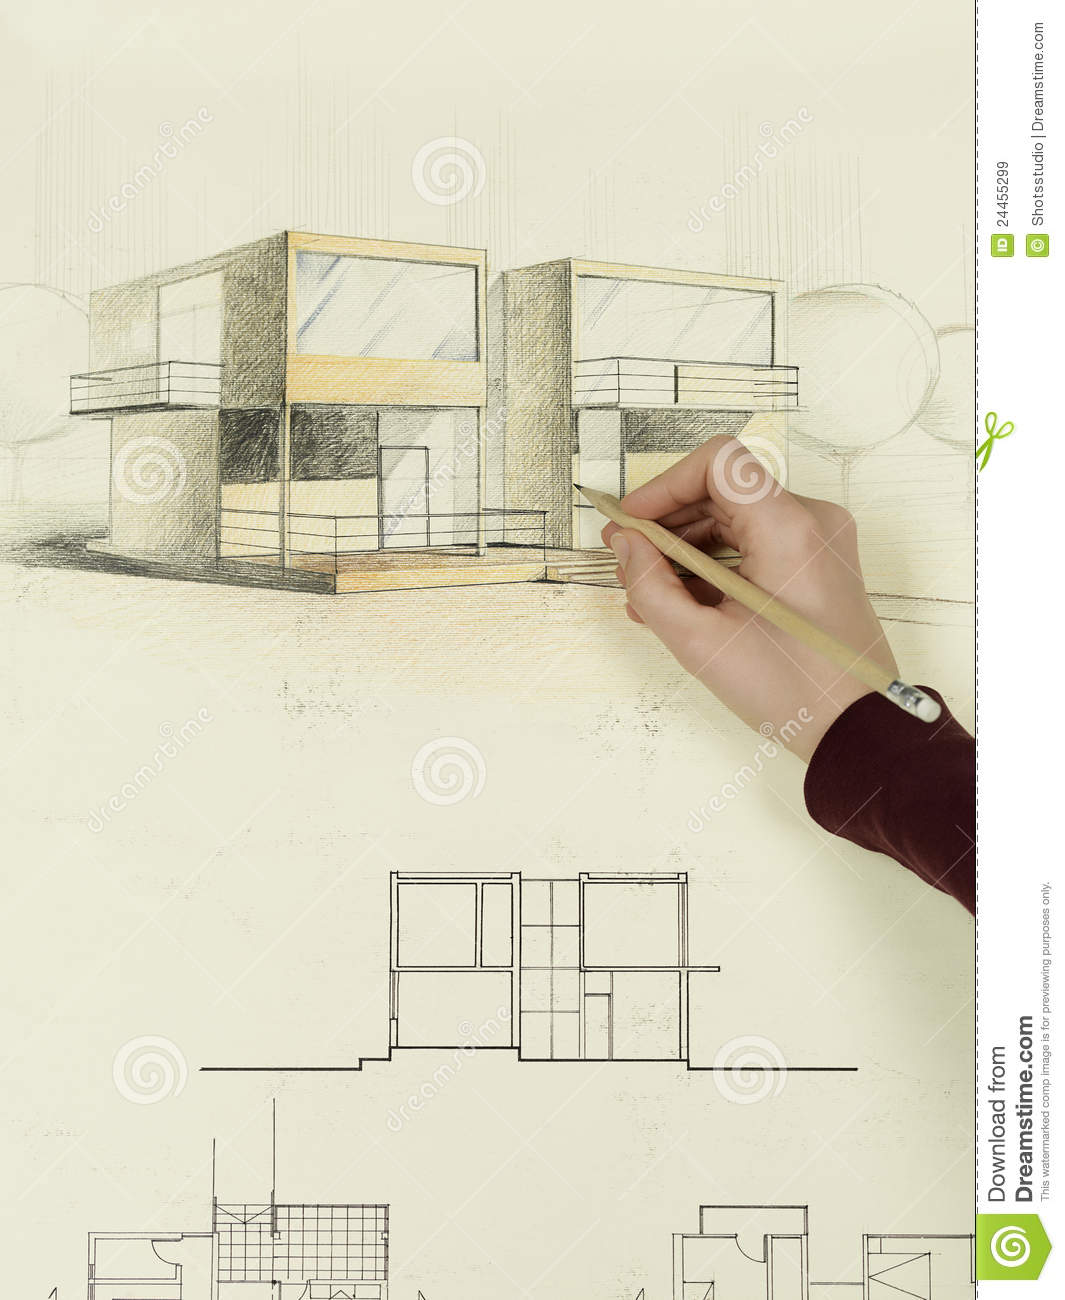 Free Online Architecture Design Of Woman 39 S Hand Drawing Architectural Sketch Of House Stock